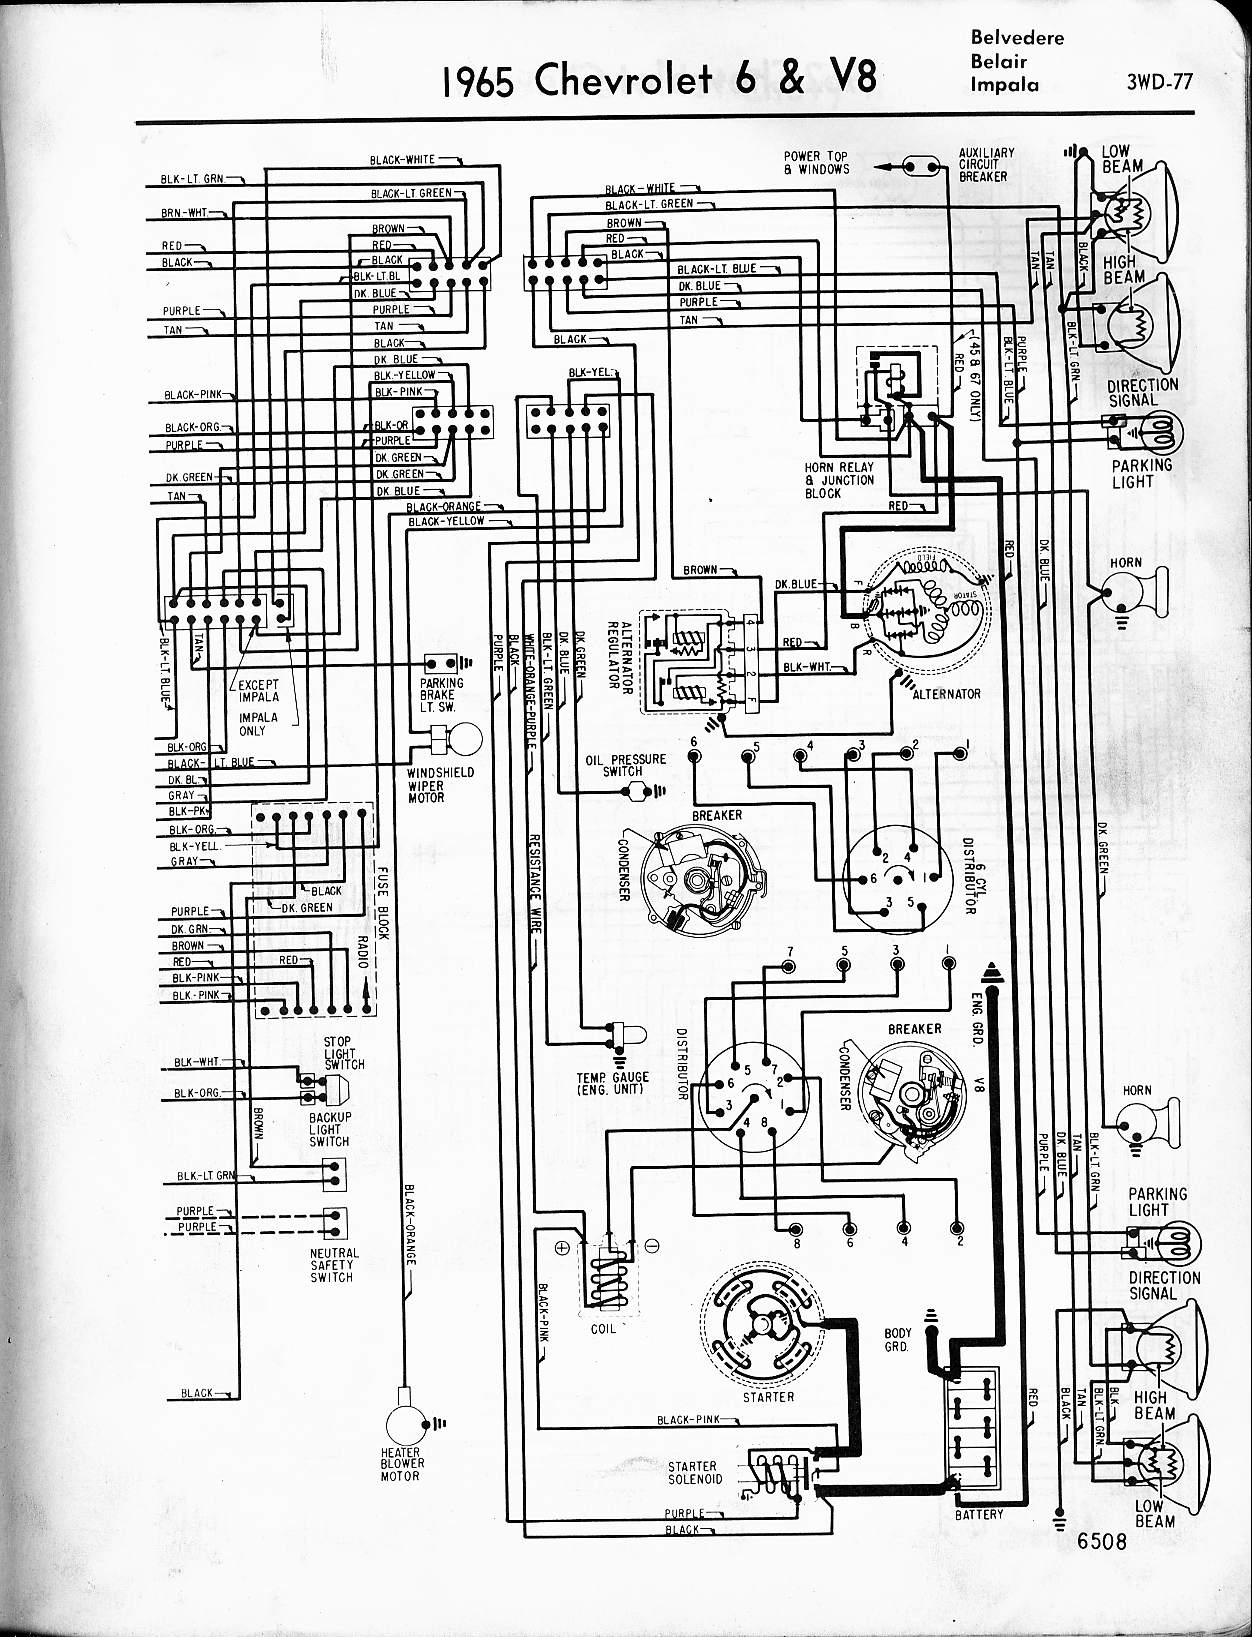 MWireChev65_3WD 077 chevy diagrams 1970 chevelle dash wiring diagram at readyjetset.co